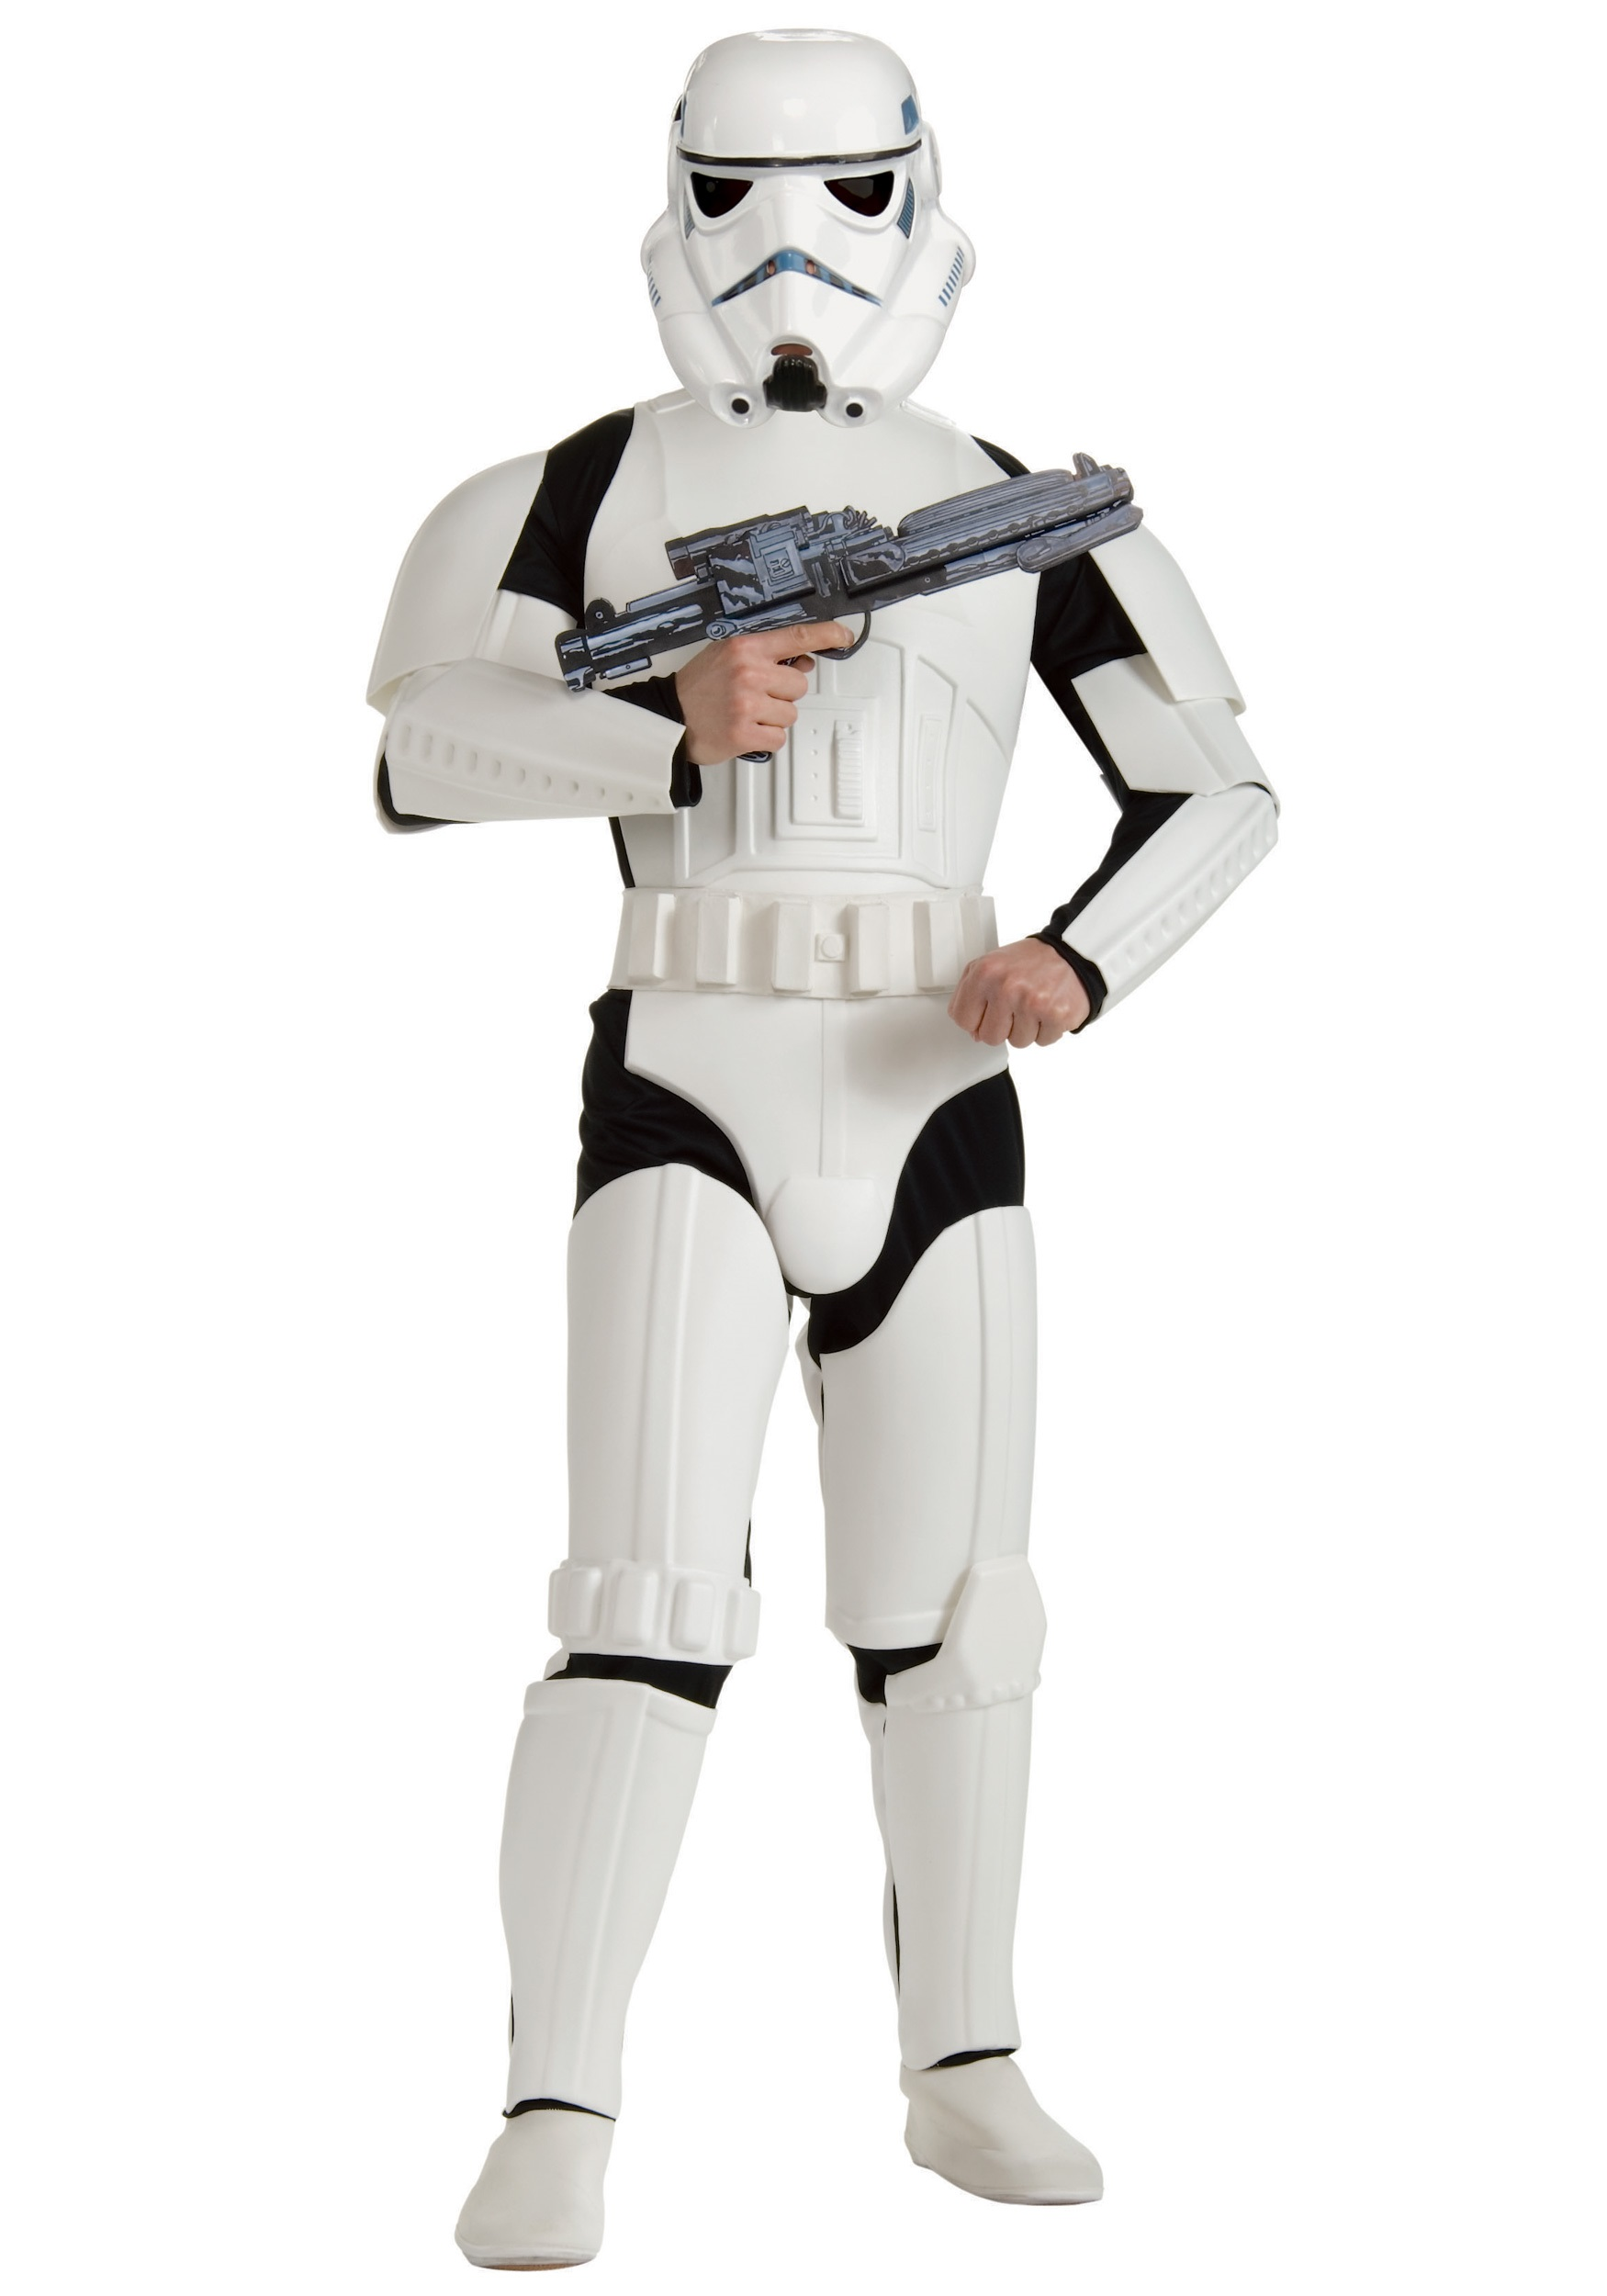 Realistic Stormtrooper Costume  sc 1 st  Halloween Costumes : stormtrooper costume toddler  - Germanpascual.Com